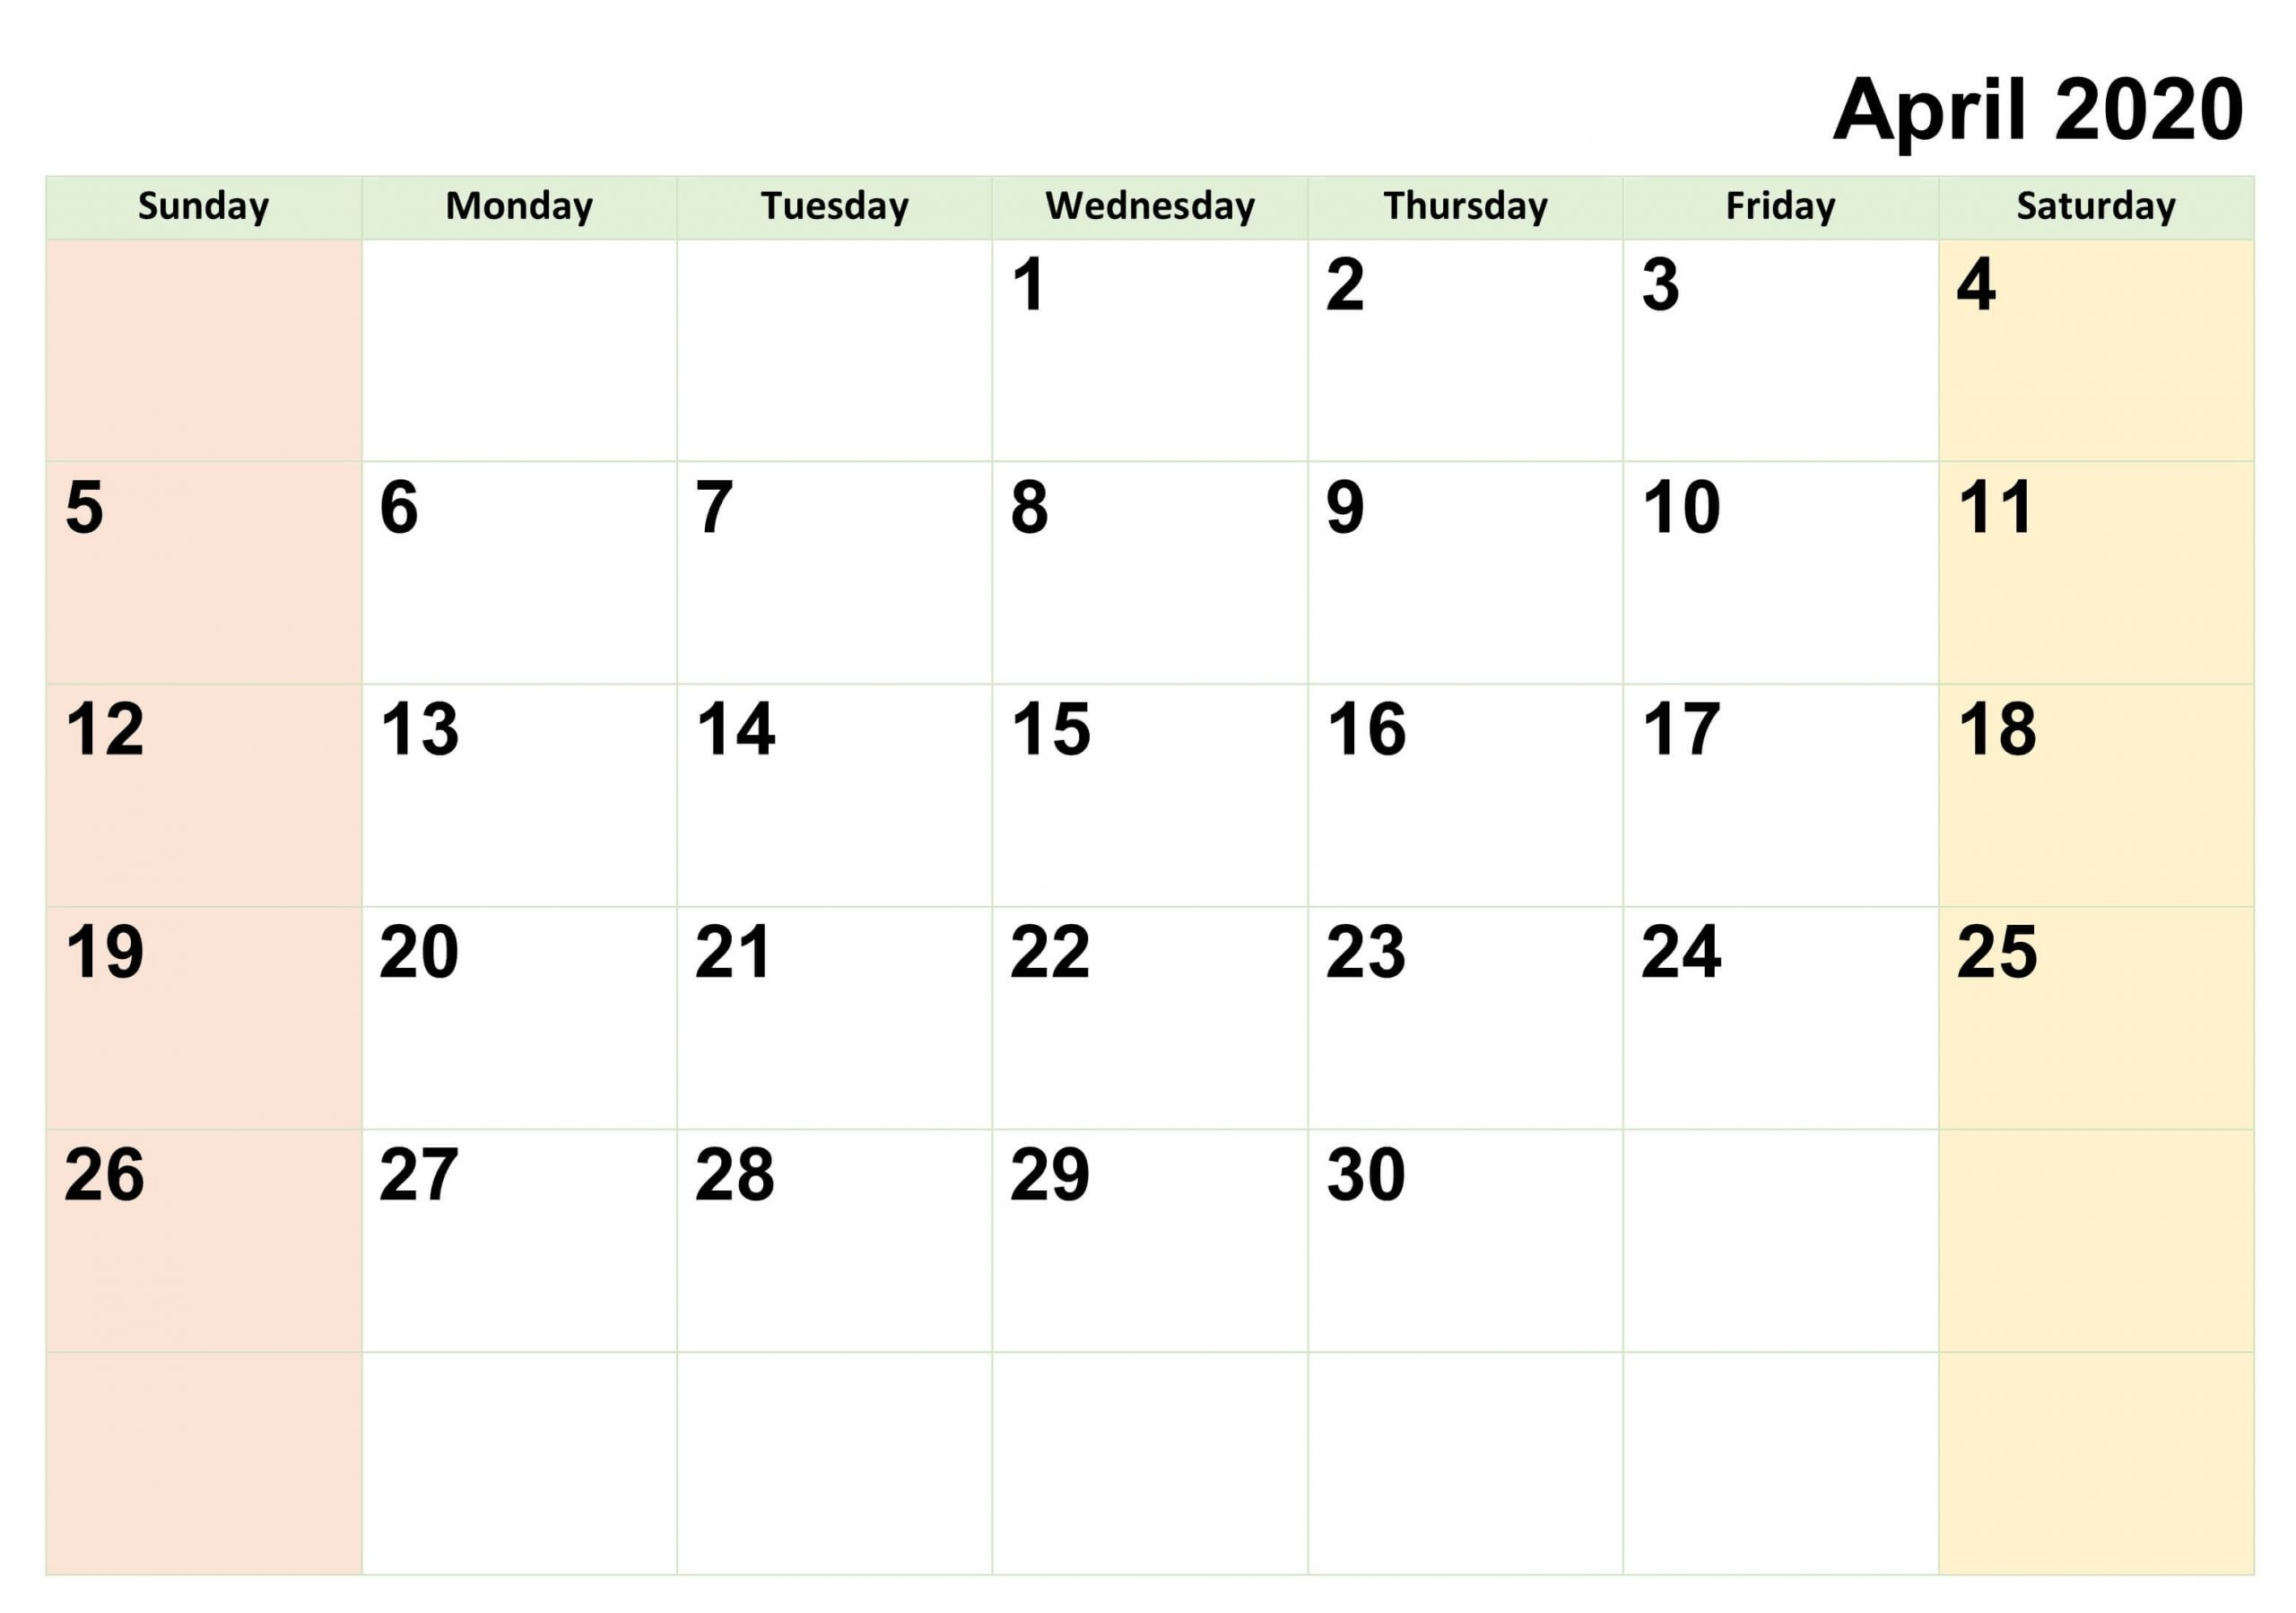 Blank April 2020 Calendar Printable With Notes Pdf - Set Your Plan & Tasks With Best Ideas Blank-Free Fillable Calendars 2021